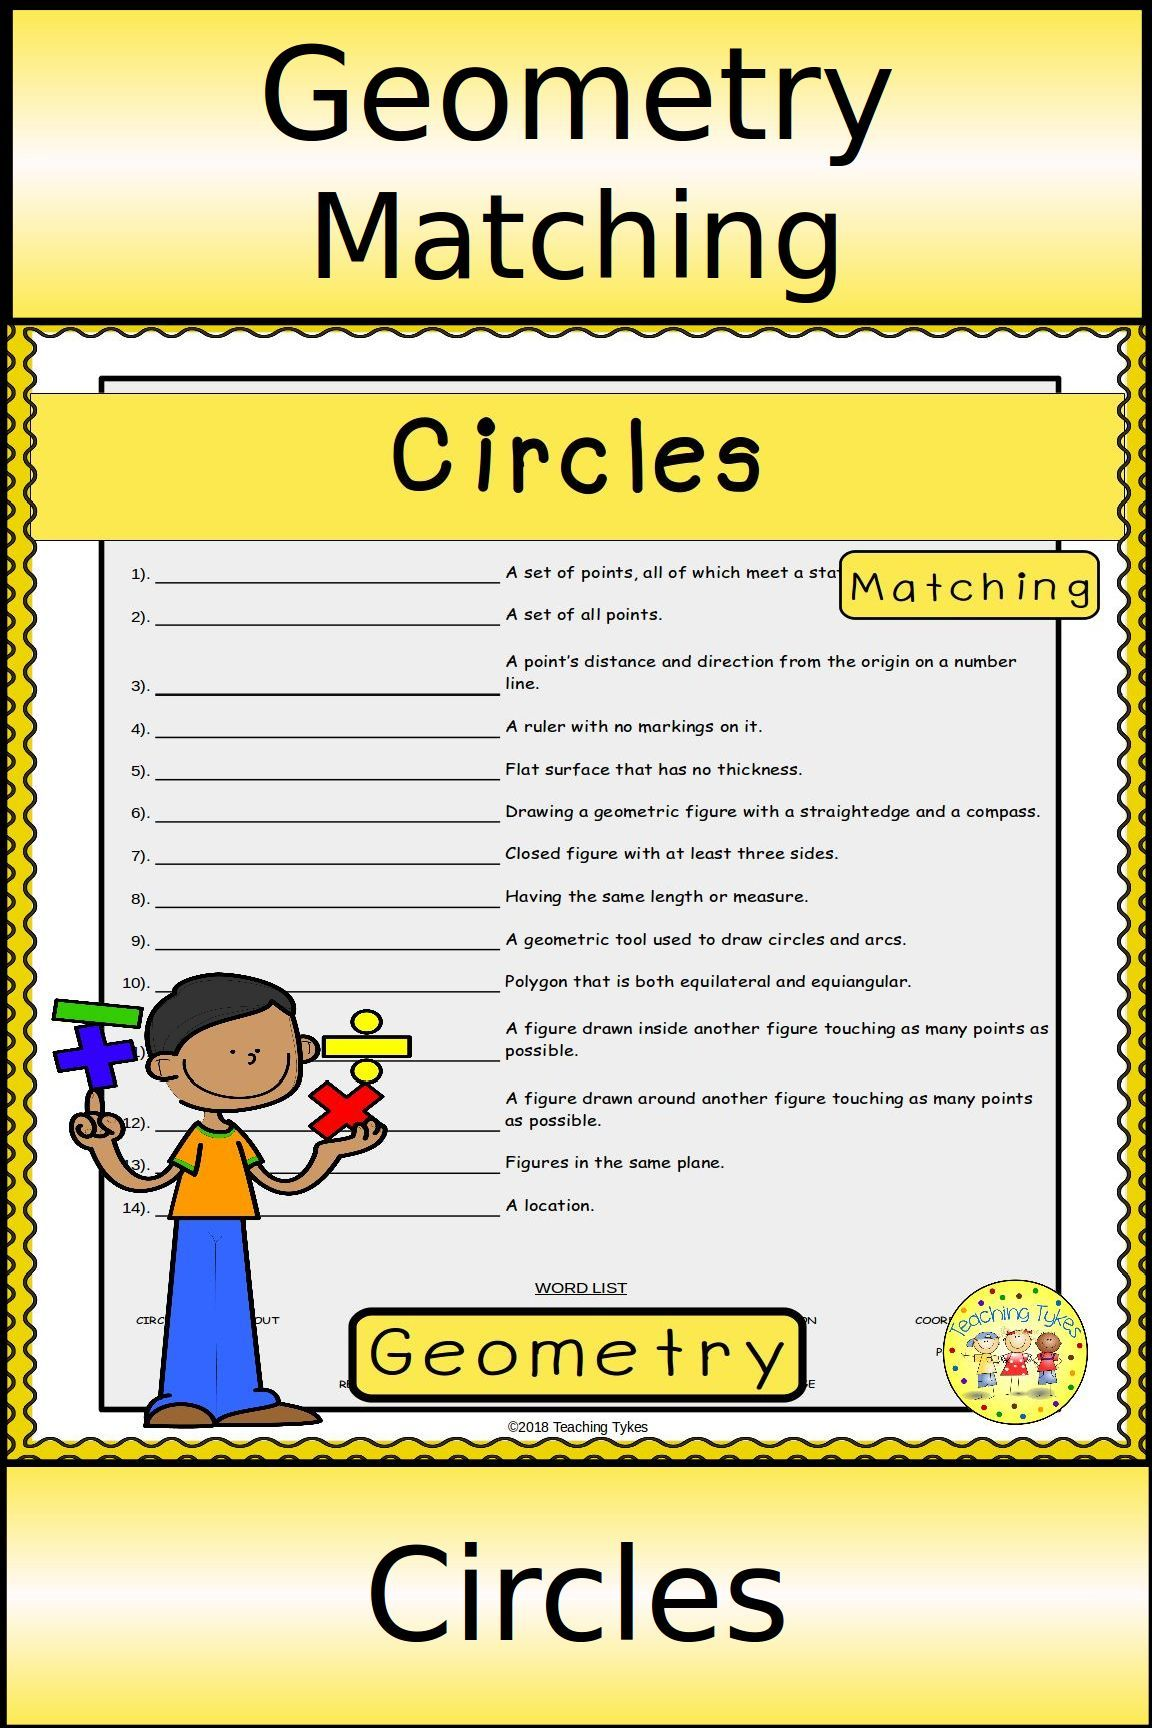 Circles Matching | Geometry Vocabulary Activities | Pinterest